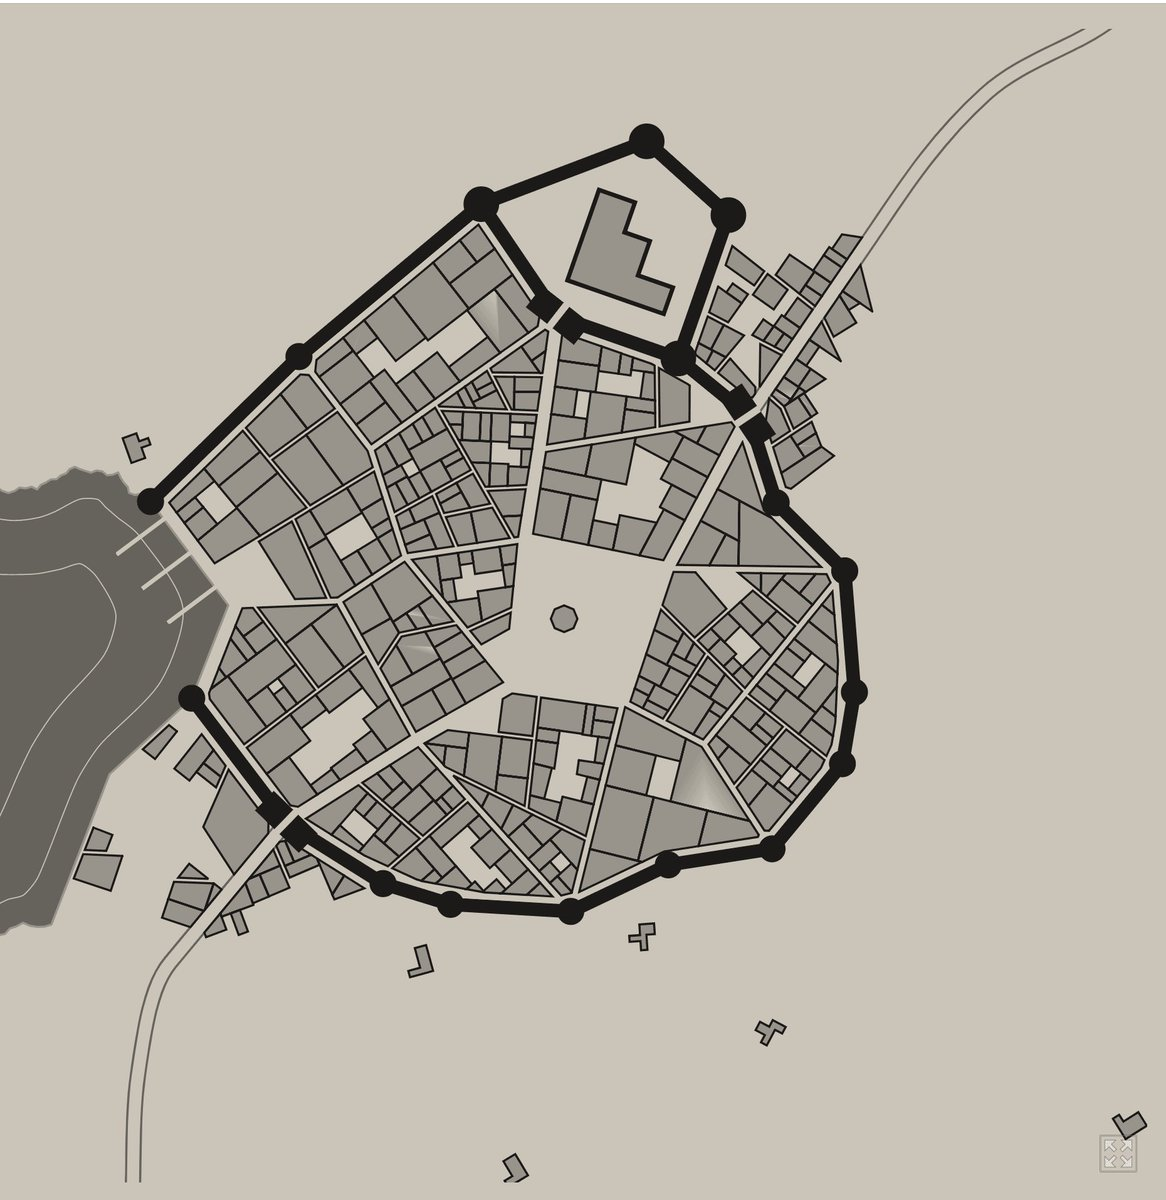 OMG! This is so awesome! A medieval city generator. Perfect for all you #RPG folks.  https://t.co/i1KUVIpfBe https://t.co/6qcp20p64F